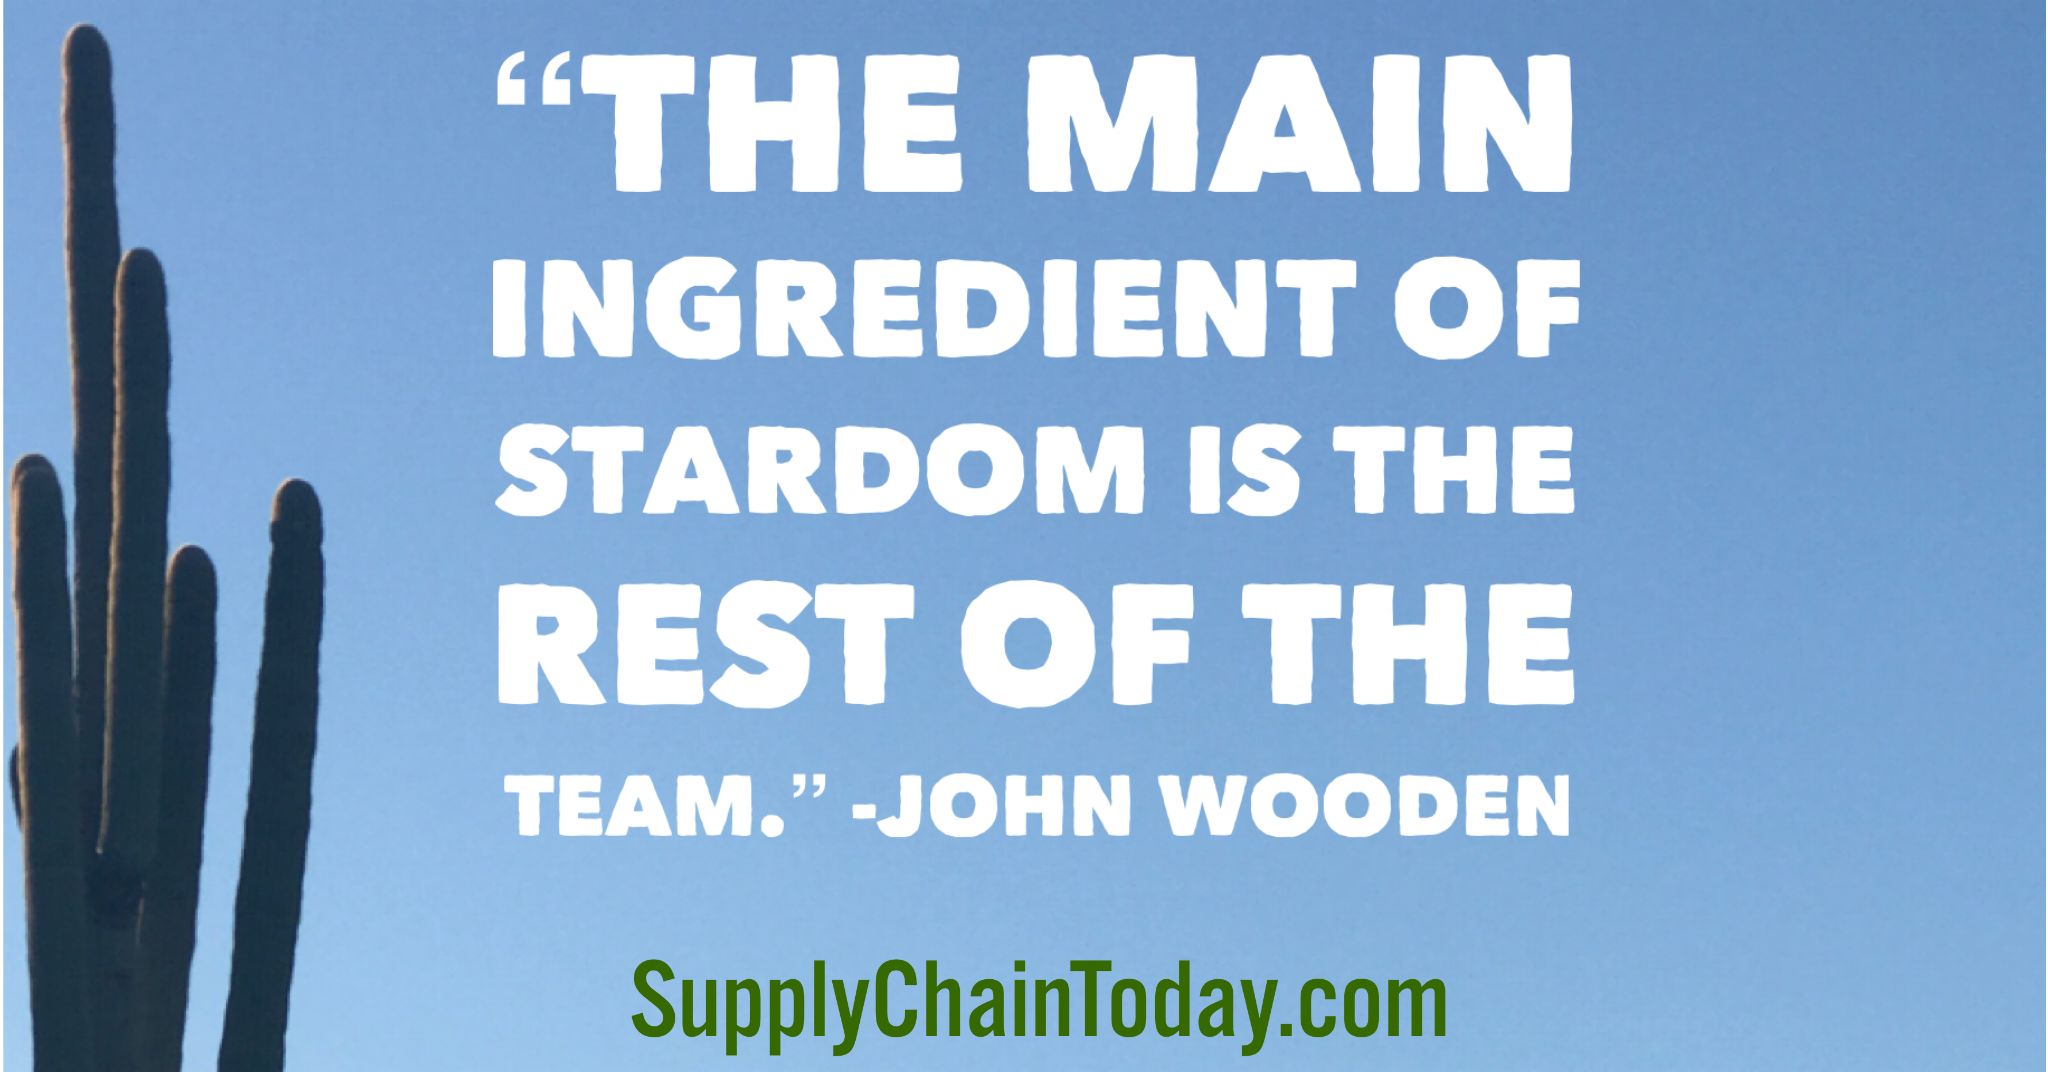 Teamwork quotes from top business minds.